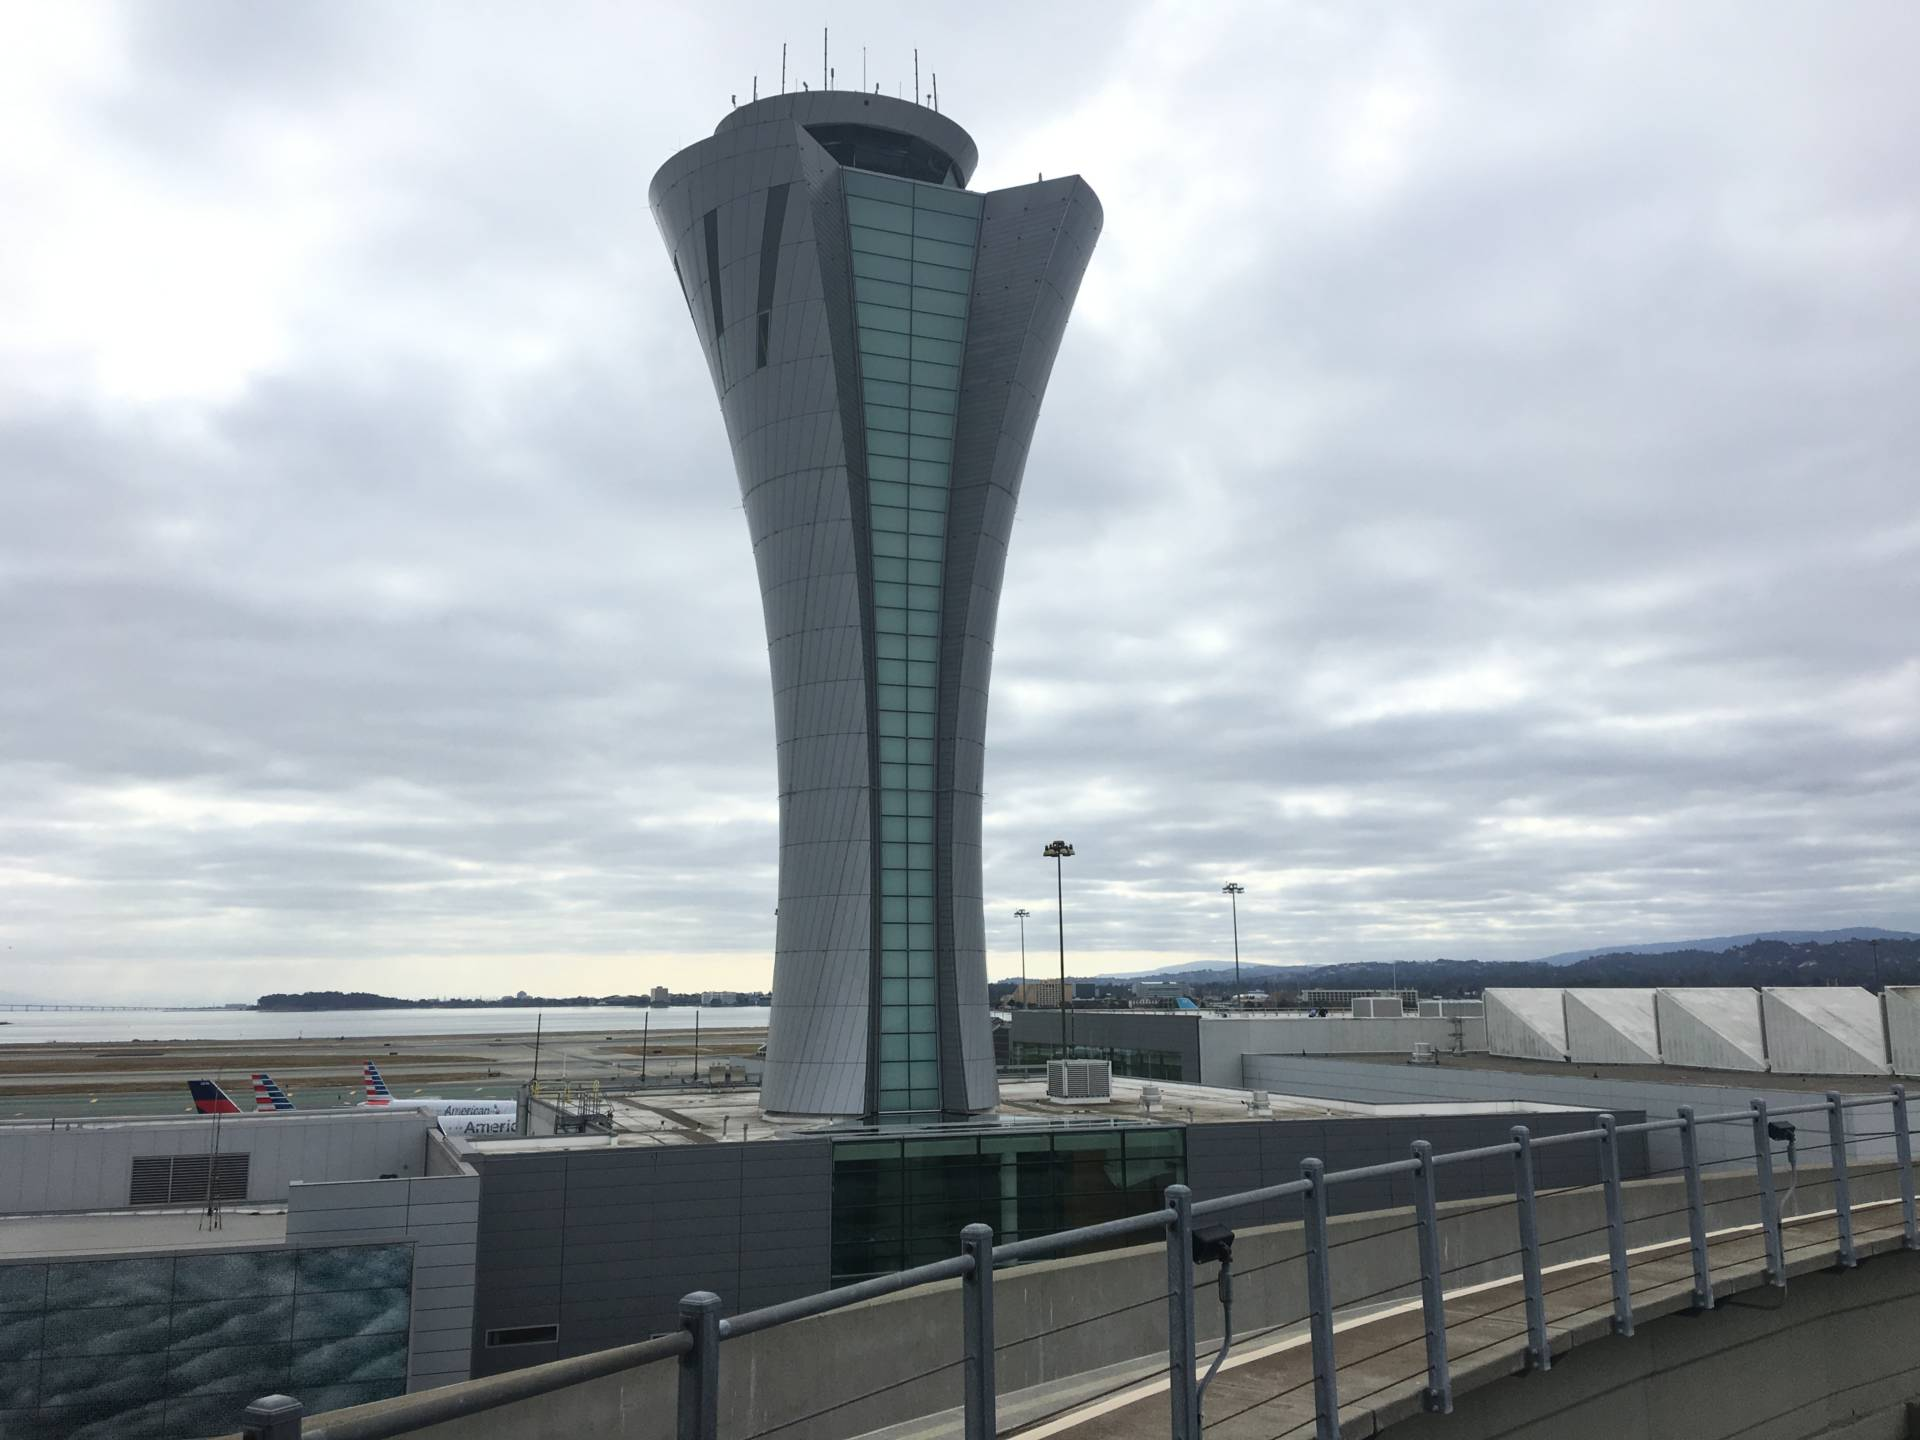 The new tower sits between terminals 1 and 2 at SFO.